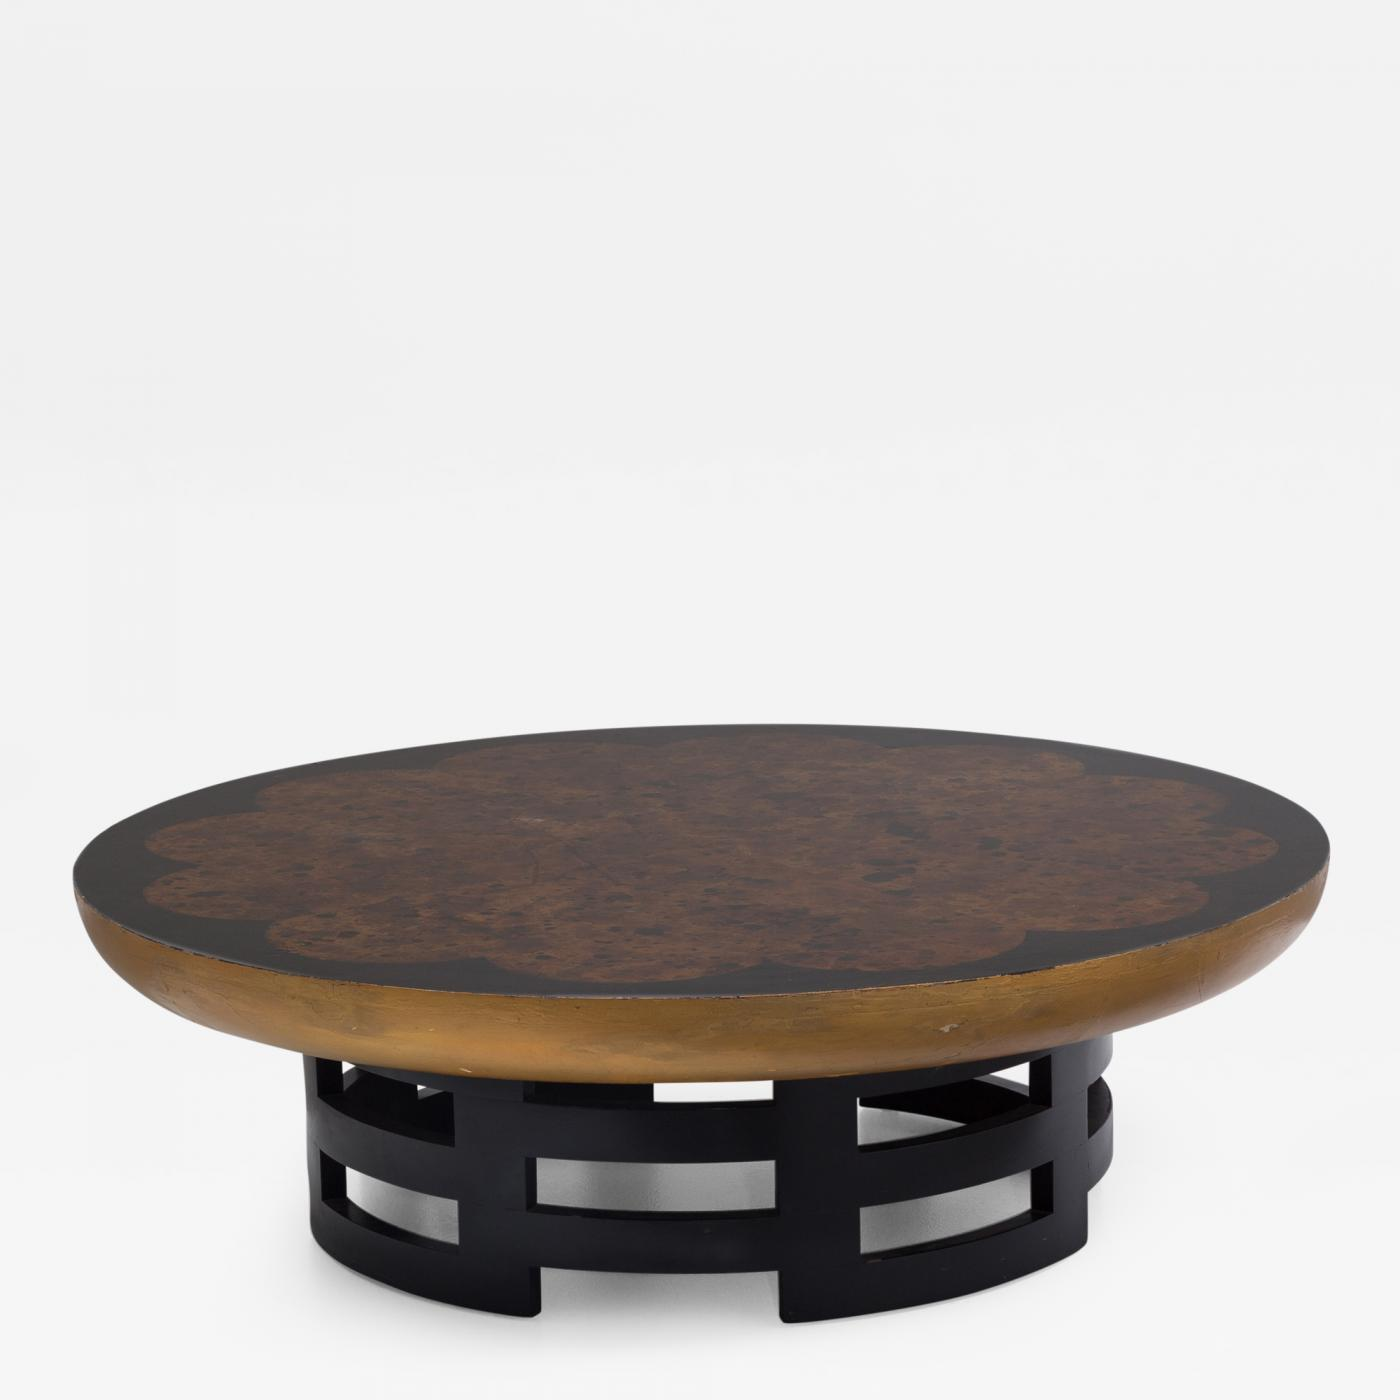 Kittinger Furniture Co A Kittinger Asian Modern Coffee Table